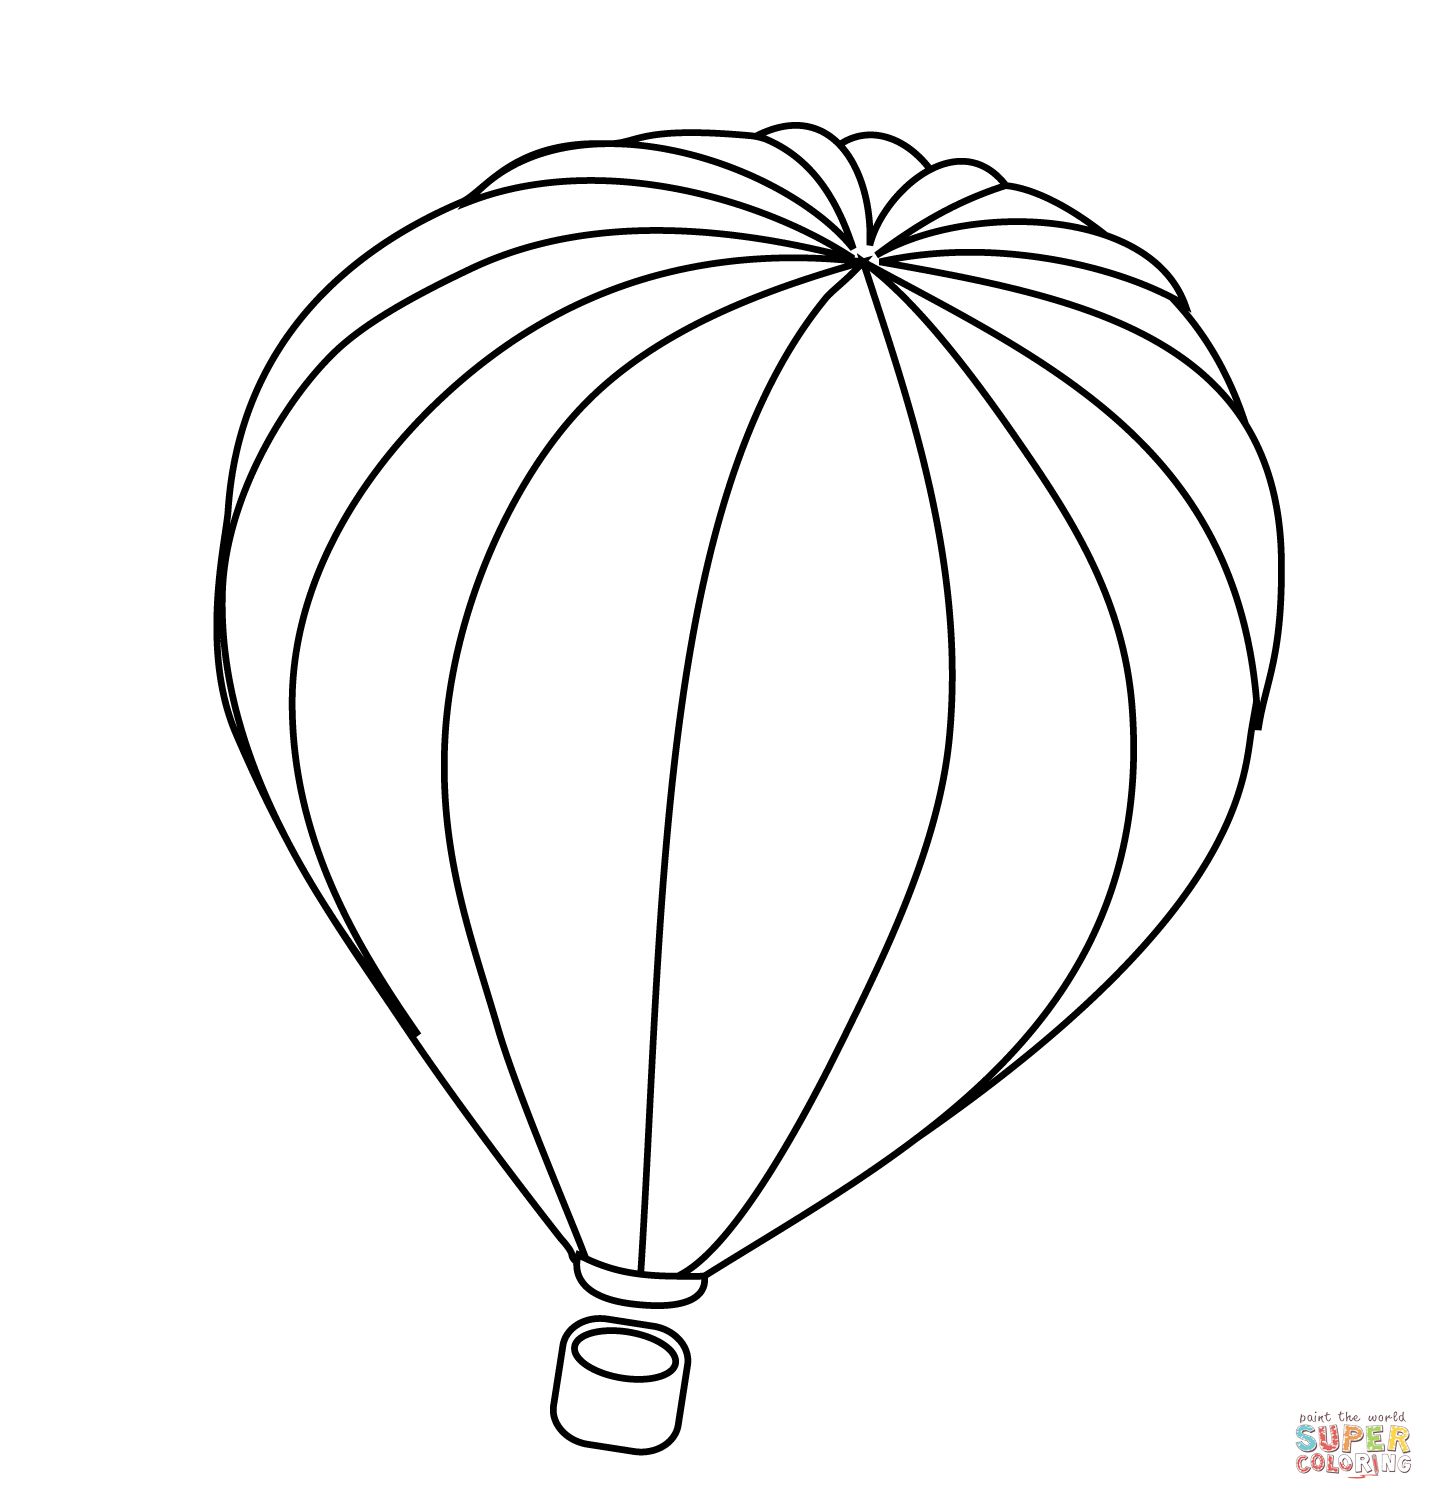 Hot Air Balloon Coloring Page Collection Of Fresh Hot Air Balloons Coloring Pages Collection to Print